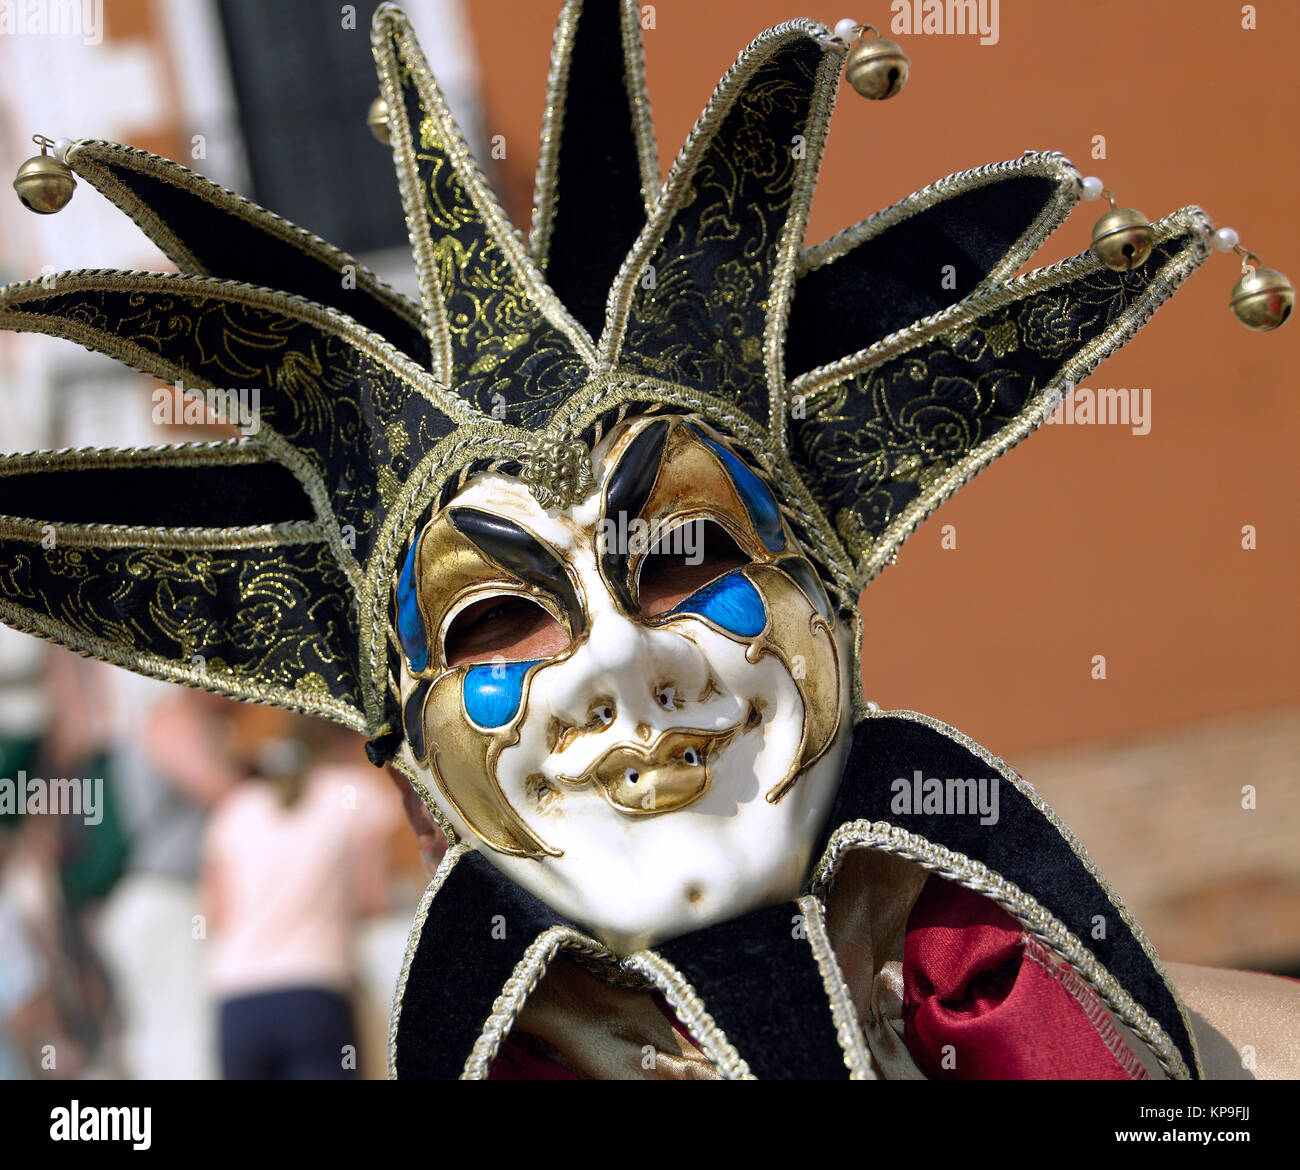 Masked figure at the Venice Carnival in the city of  Venice in northern Italy - Stock Image